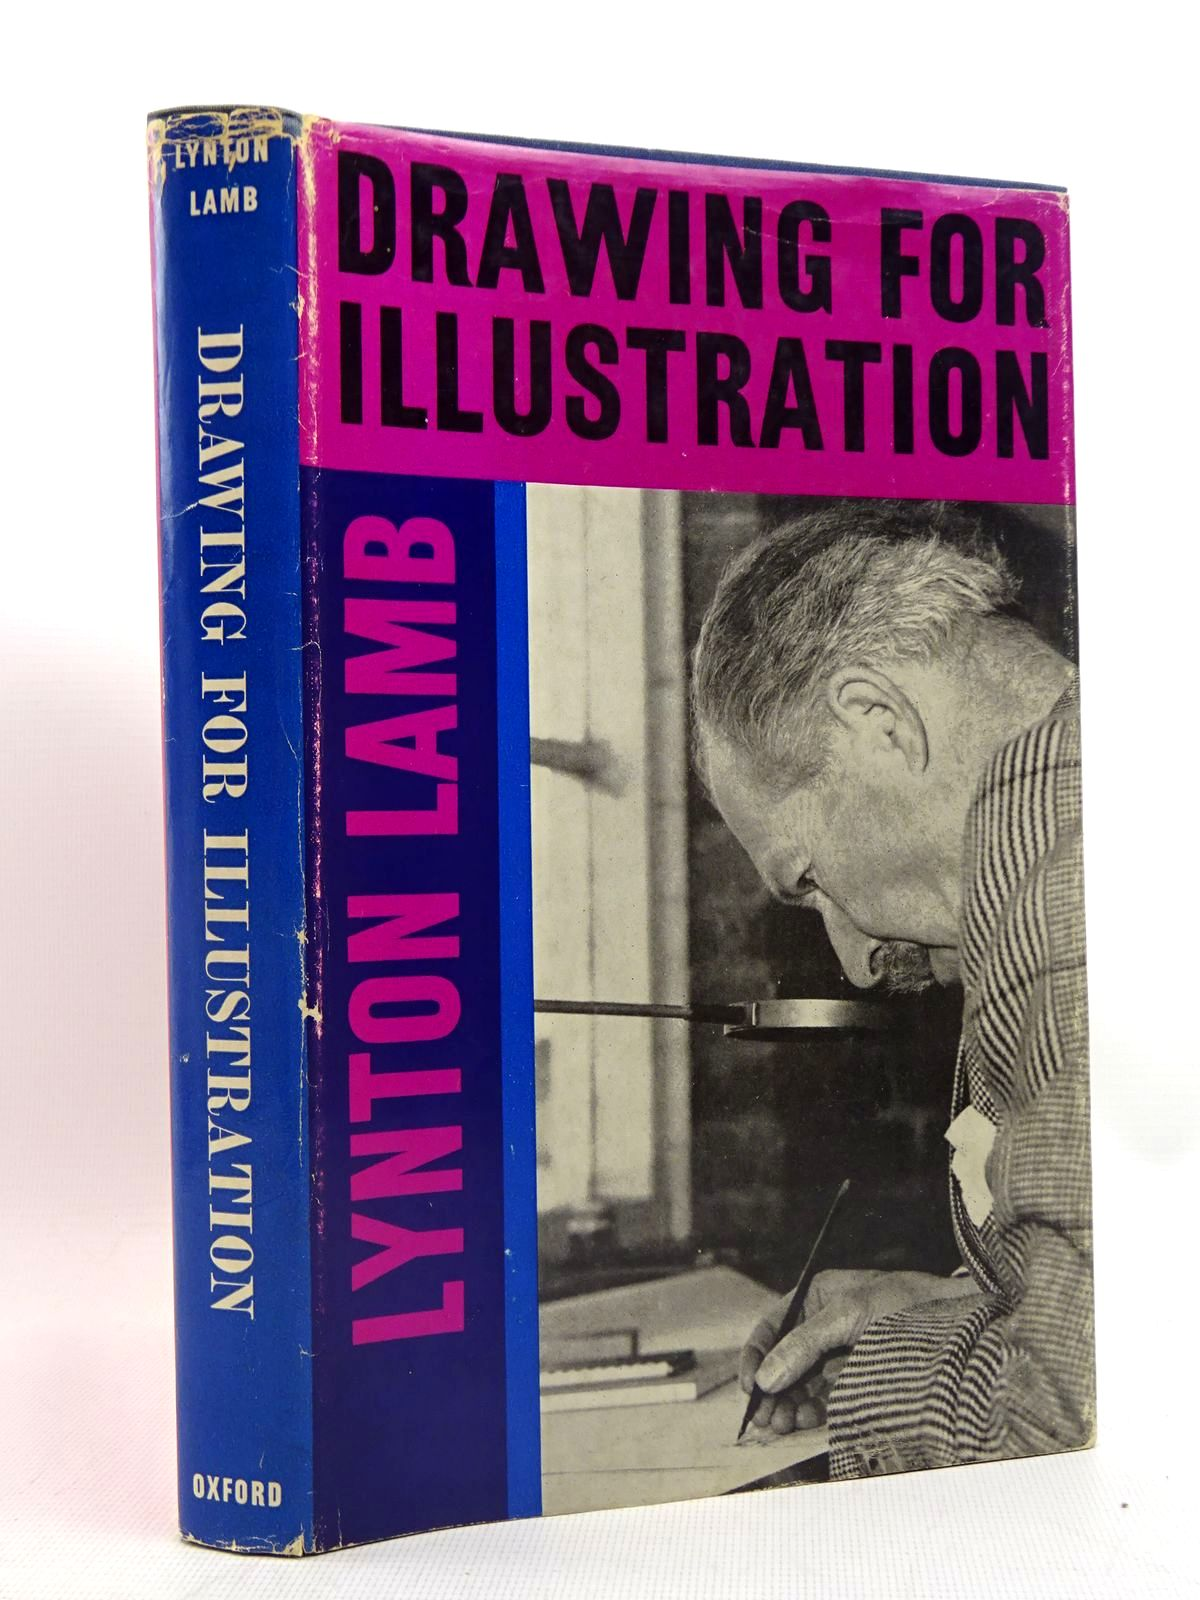 Photo of DRAWING FOR ILLUSTRATION written by Lamb, Lynton illustrated by Lamb, Lynton published by Oxford University Press (STOCK CODE: 1317549)  for sale by Stella & Rose's Books